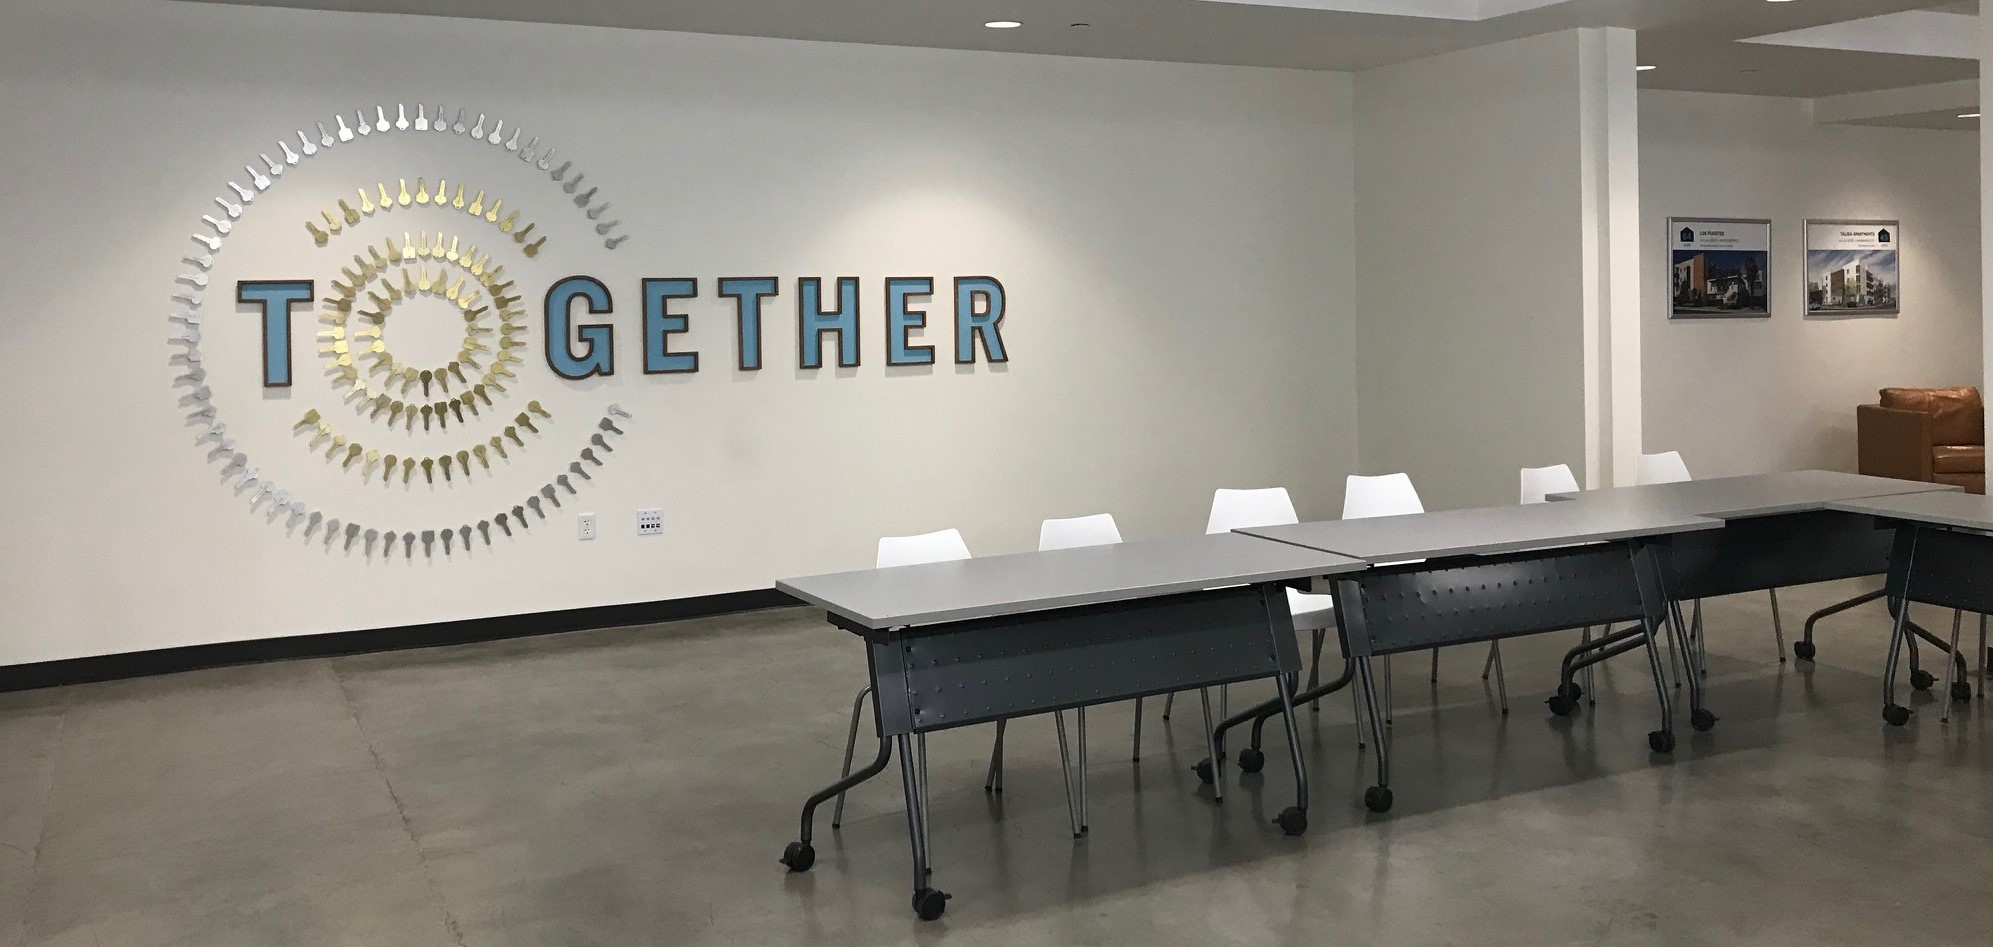 A room with the word together spelled on the wall in large lettering, with keys forming the letter o. There is also a table and chairs set up in the room for gatherings.